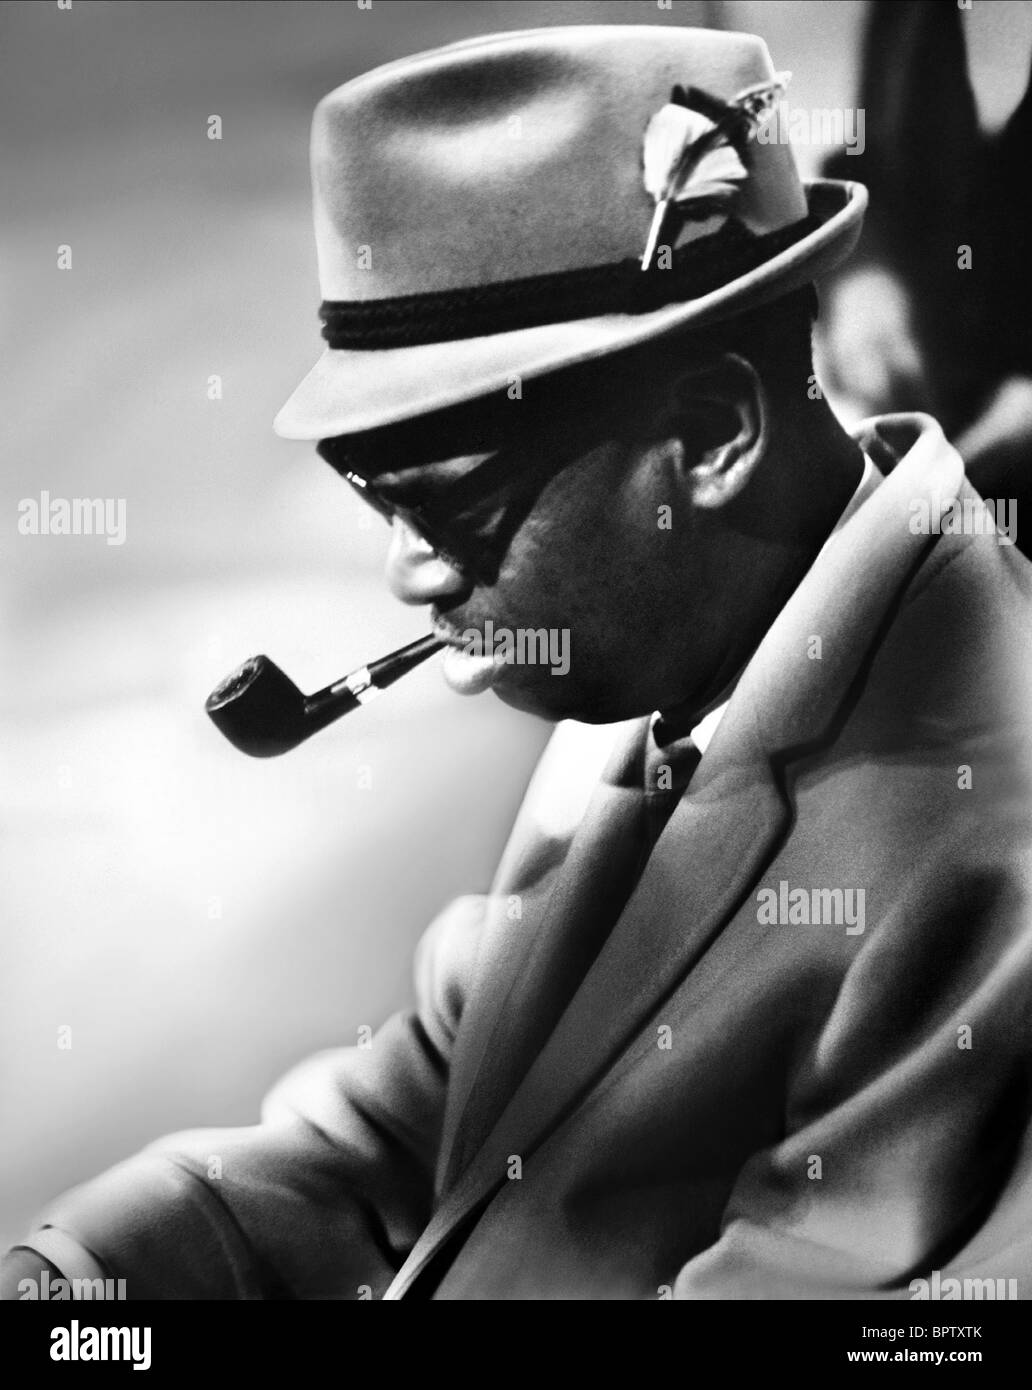 EARL HINES PIANIST (1972) - Stock Image